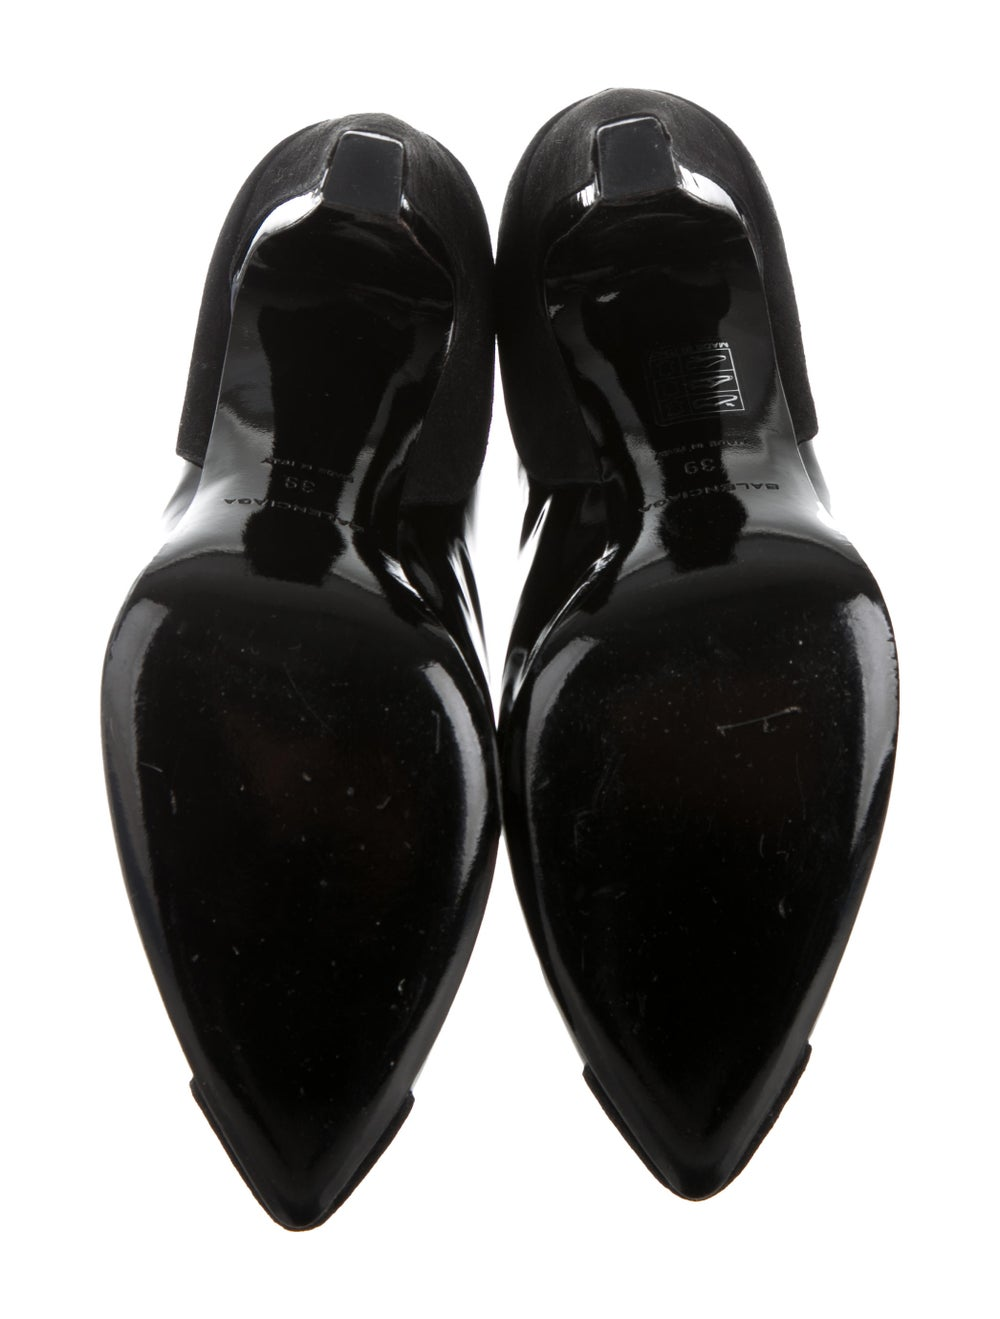 Balenciaga Cap-Toe Patent Leather Ankle Booties B… - image 5